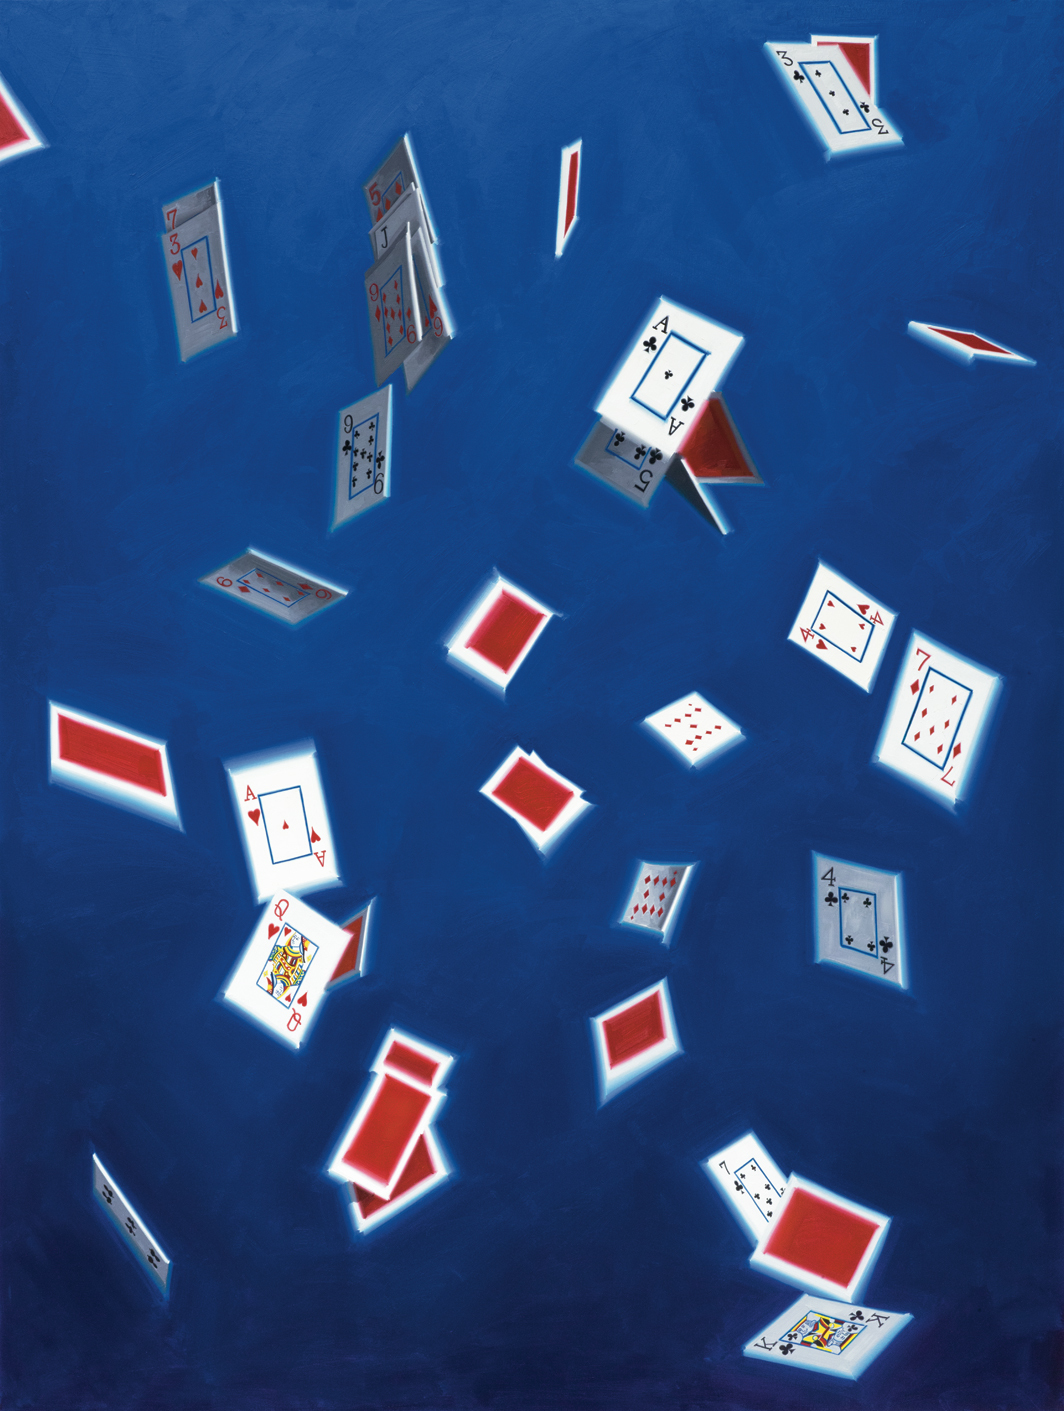 Luke O'Halloran, Cards in the air 07, 2020, oil on canvas, 73 × 55